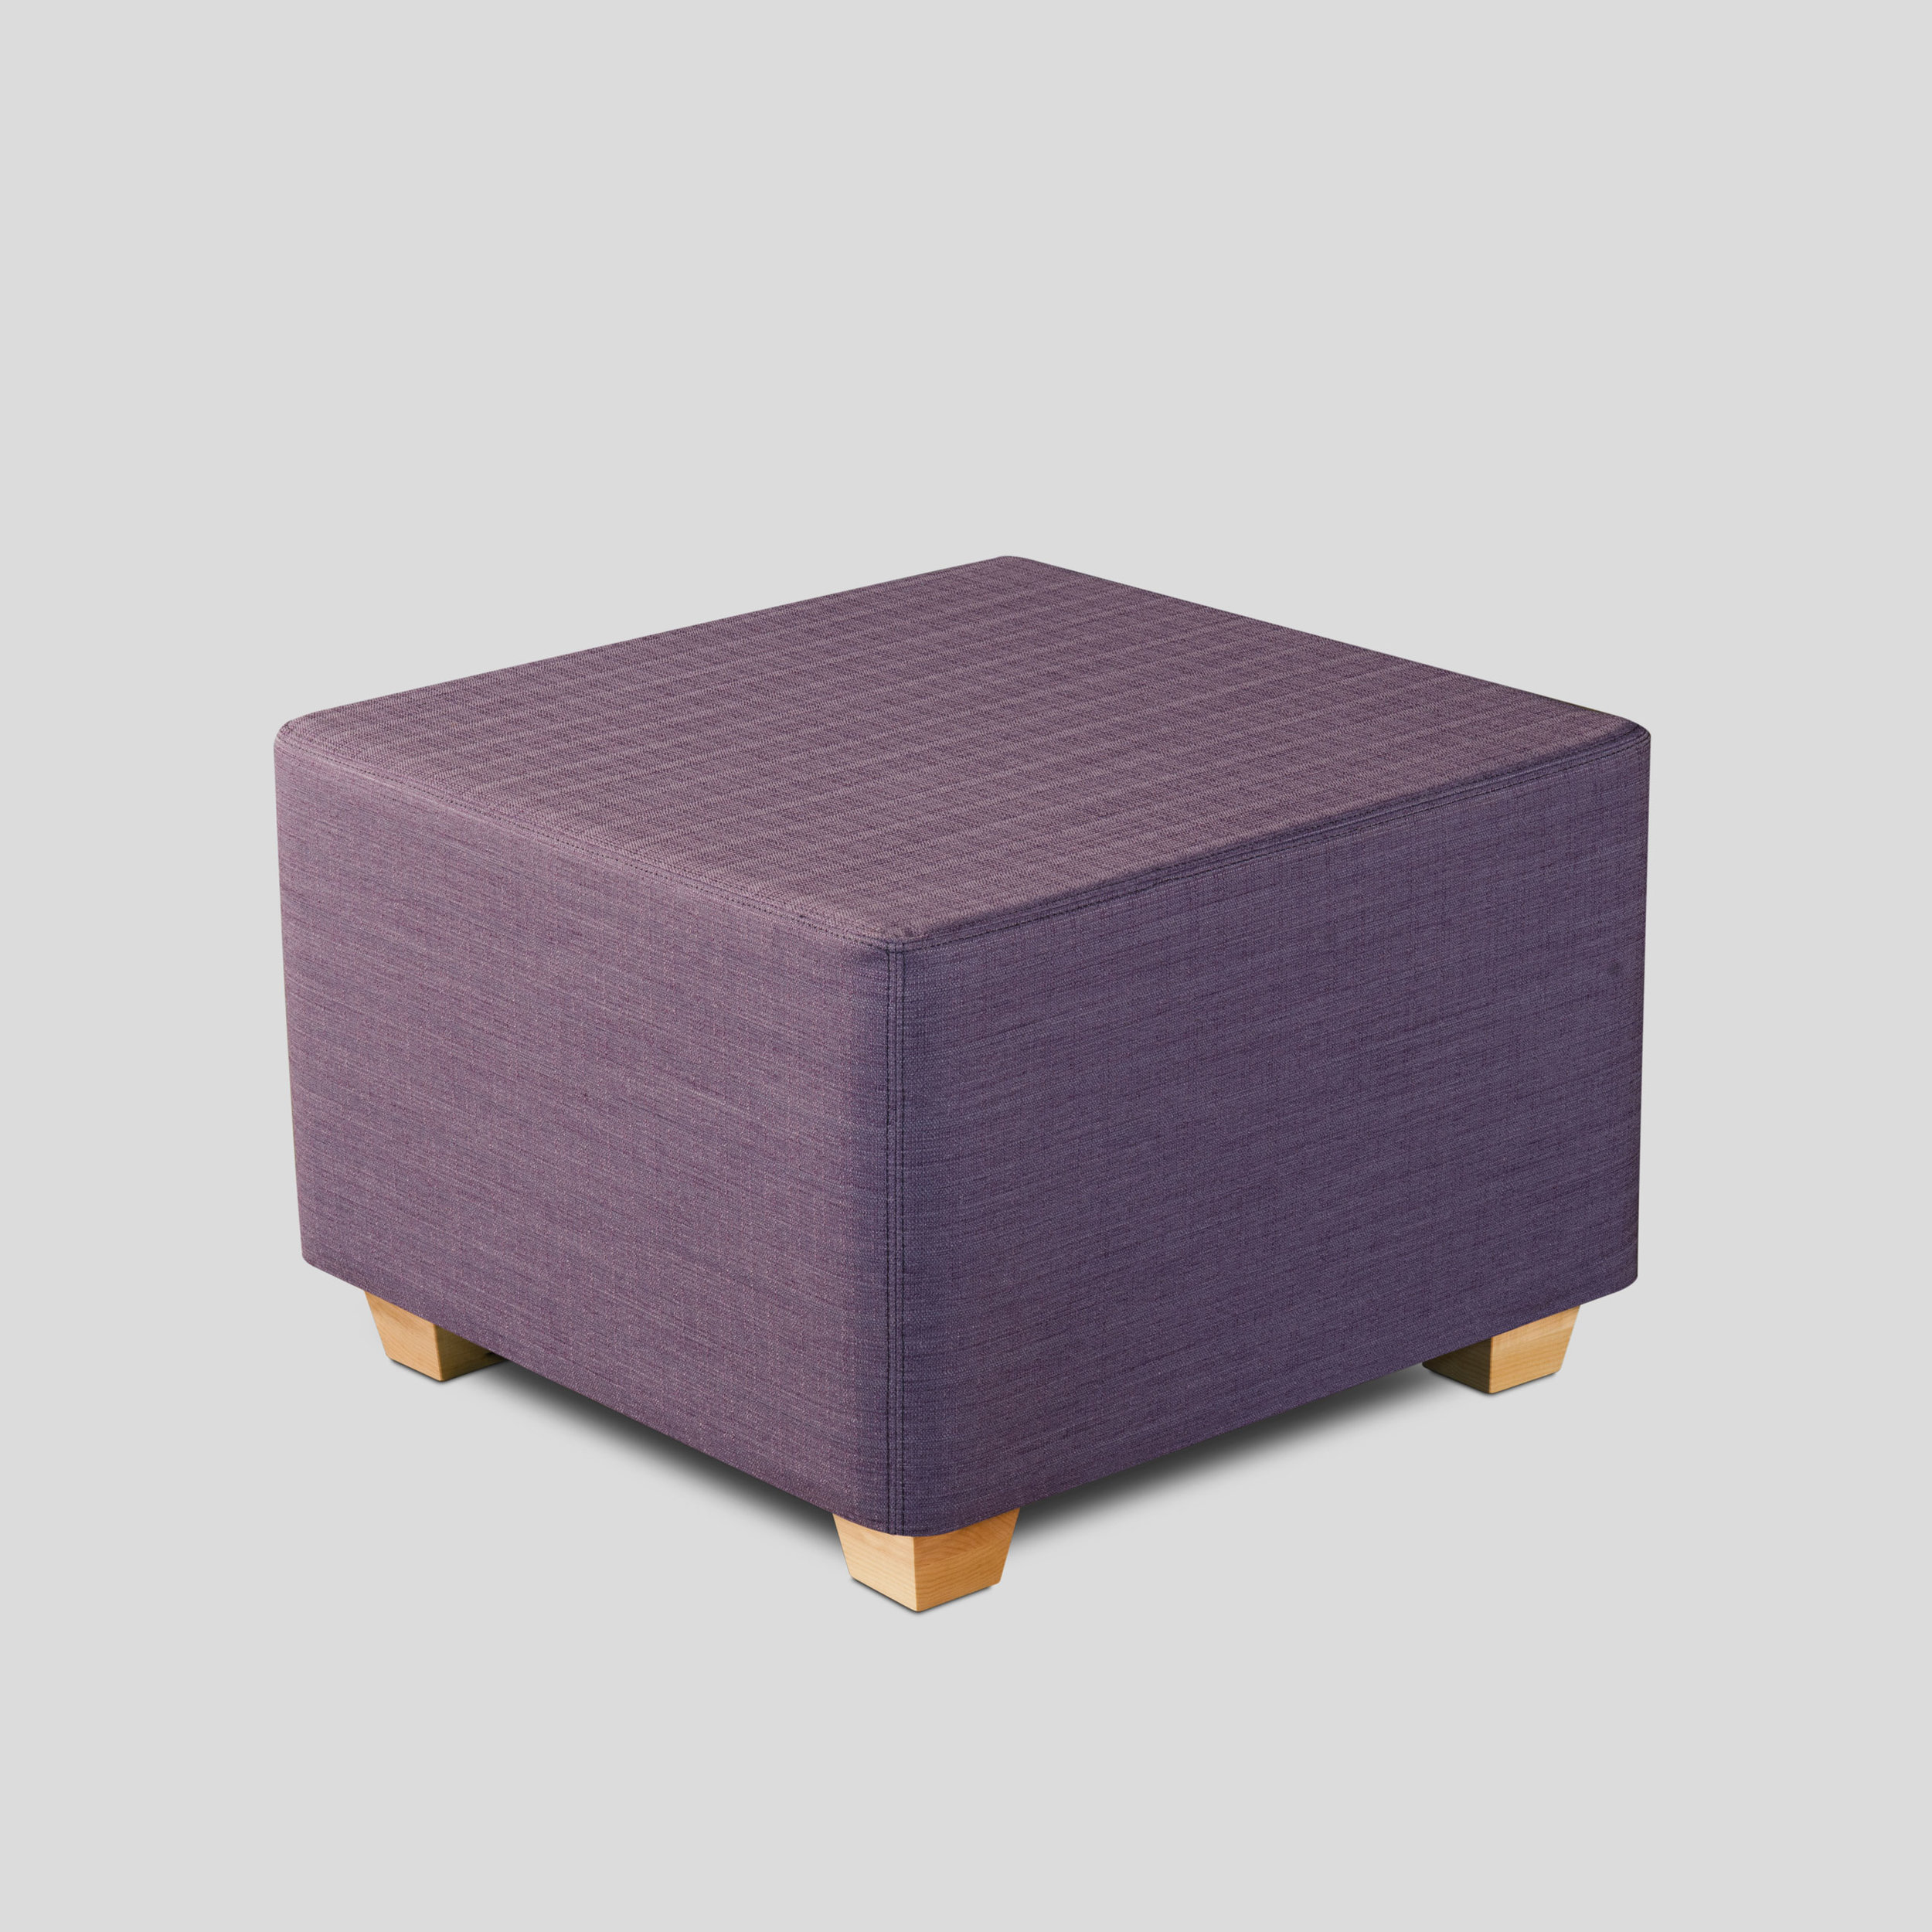 Copy of INDIE ottoman